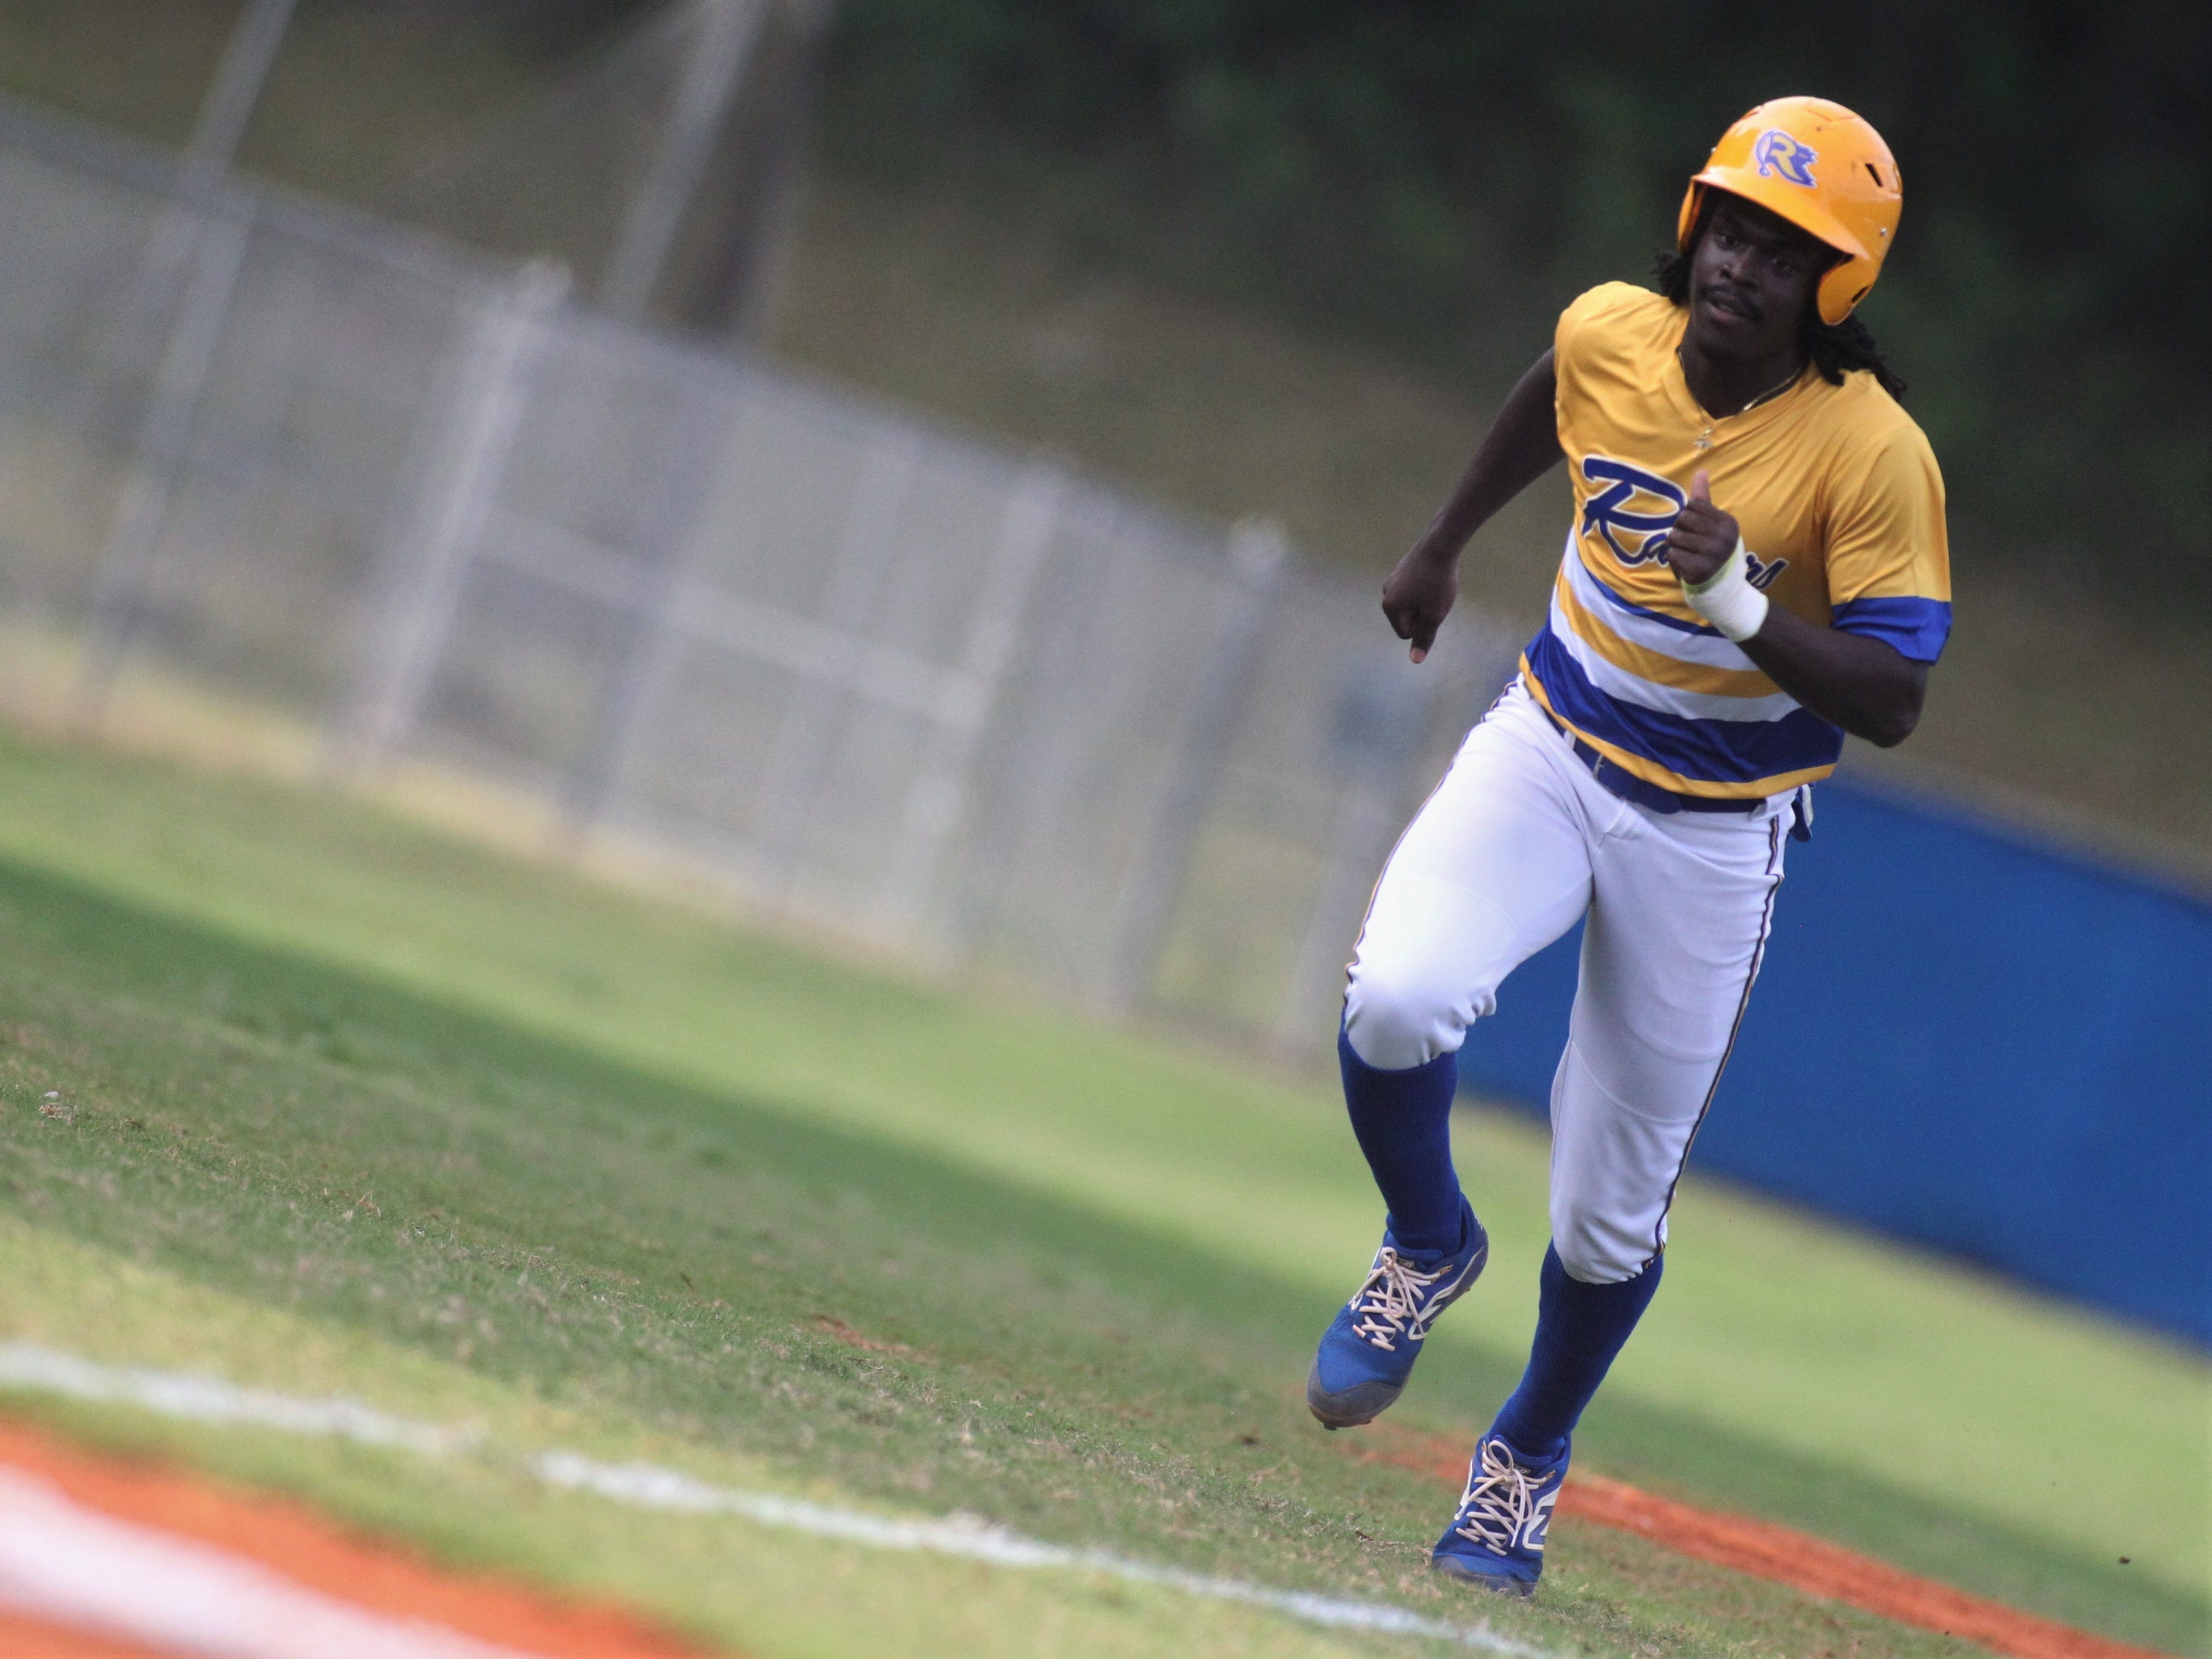 Rickards sophomore Kaleb Henry trots home to score a run as Rickards beat Gadsden County 18-0 in three innings on Friday, April 12, 2019.